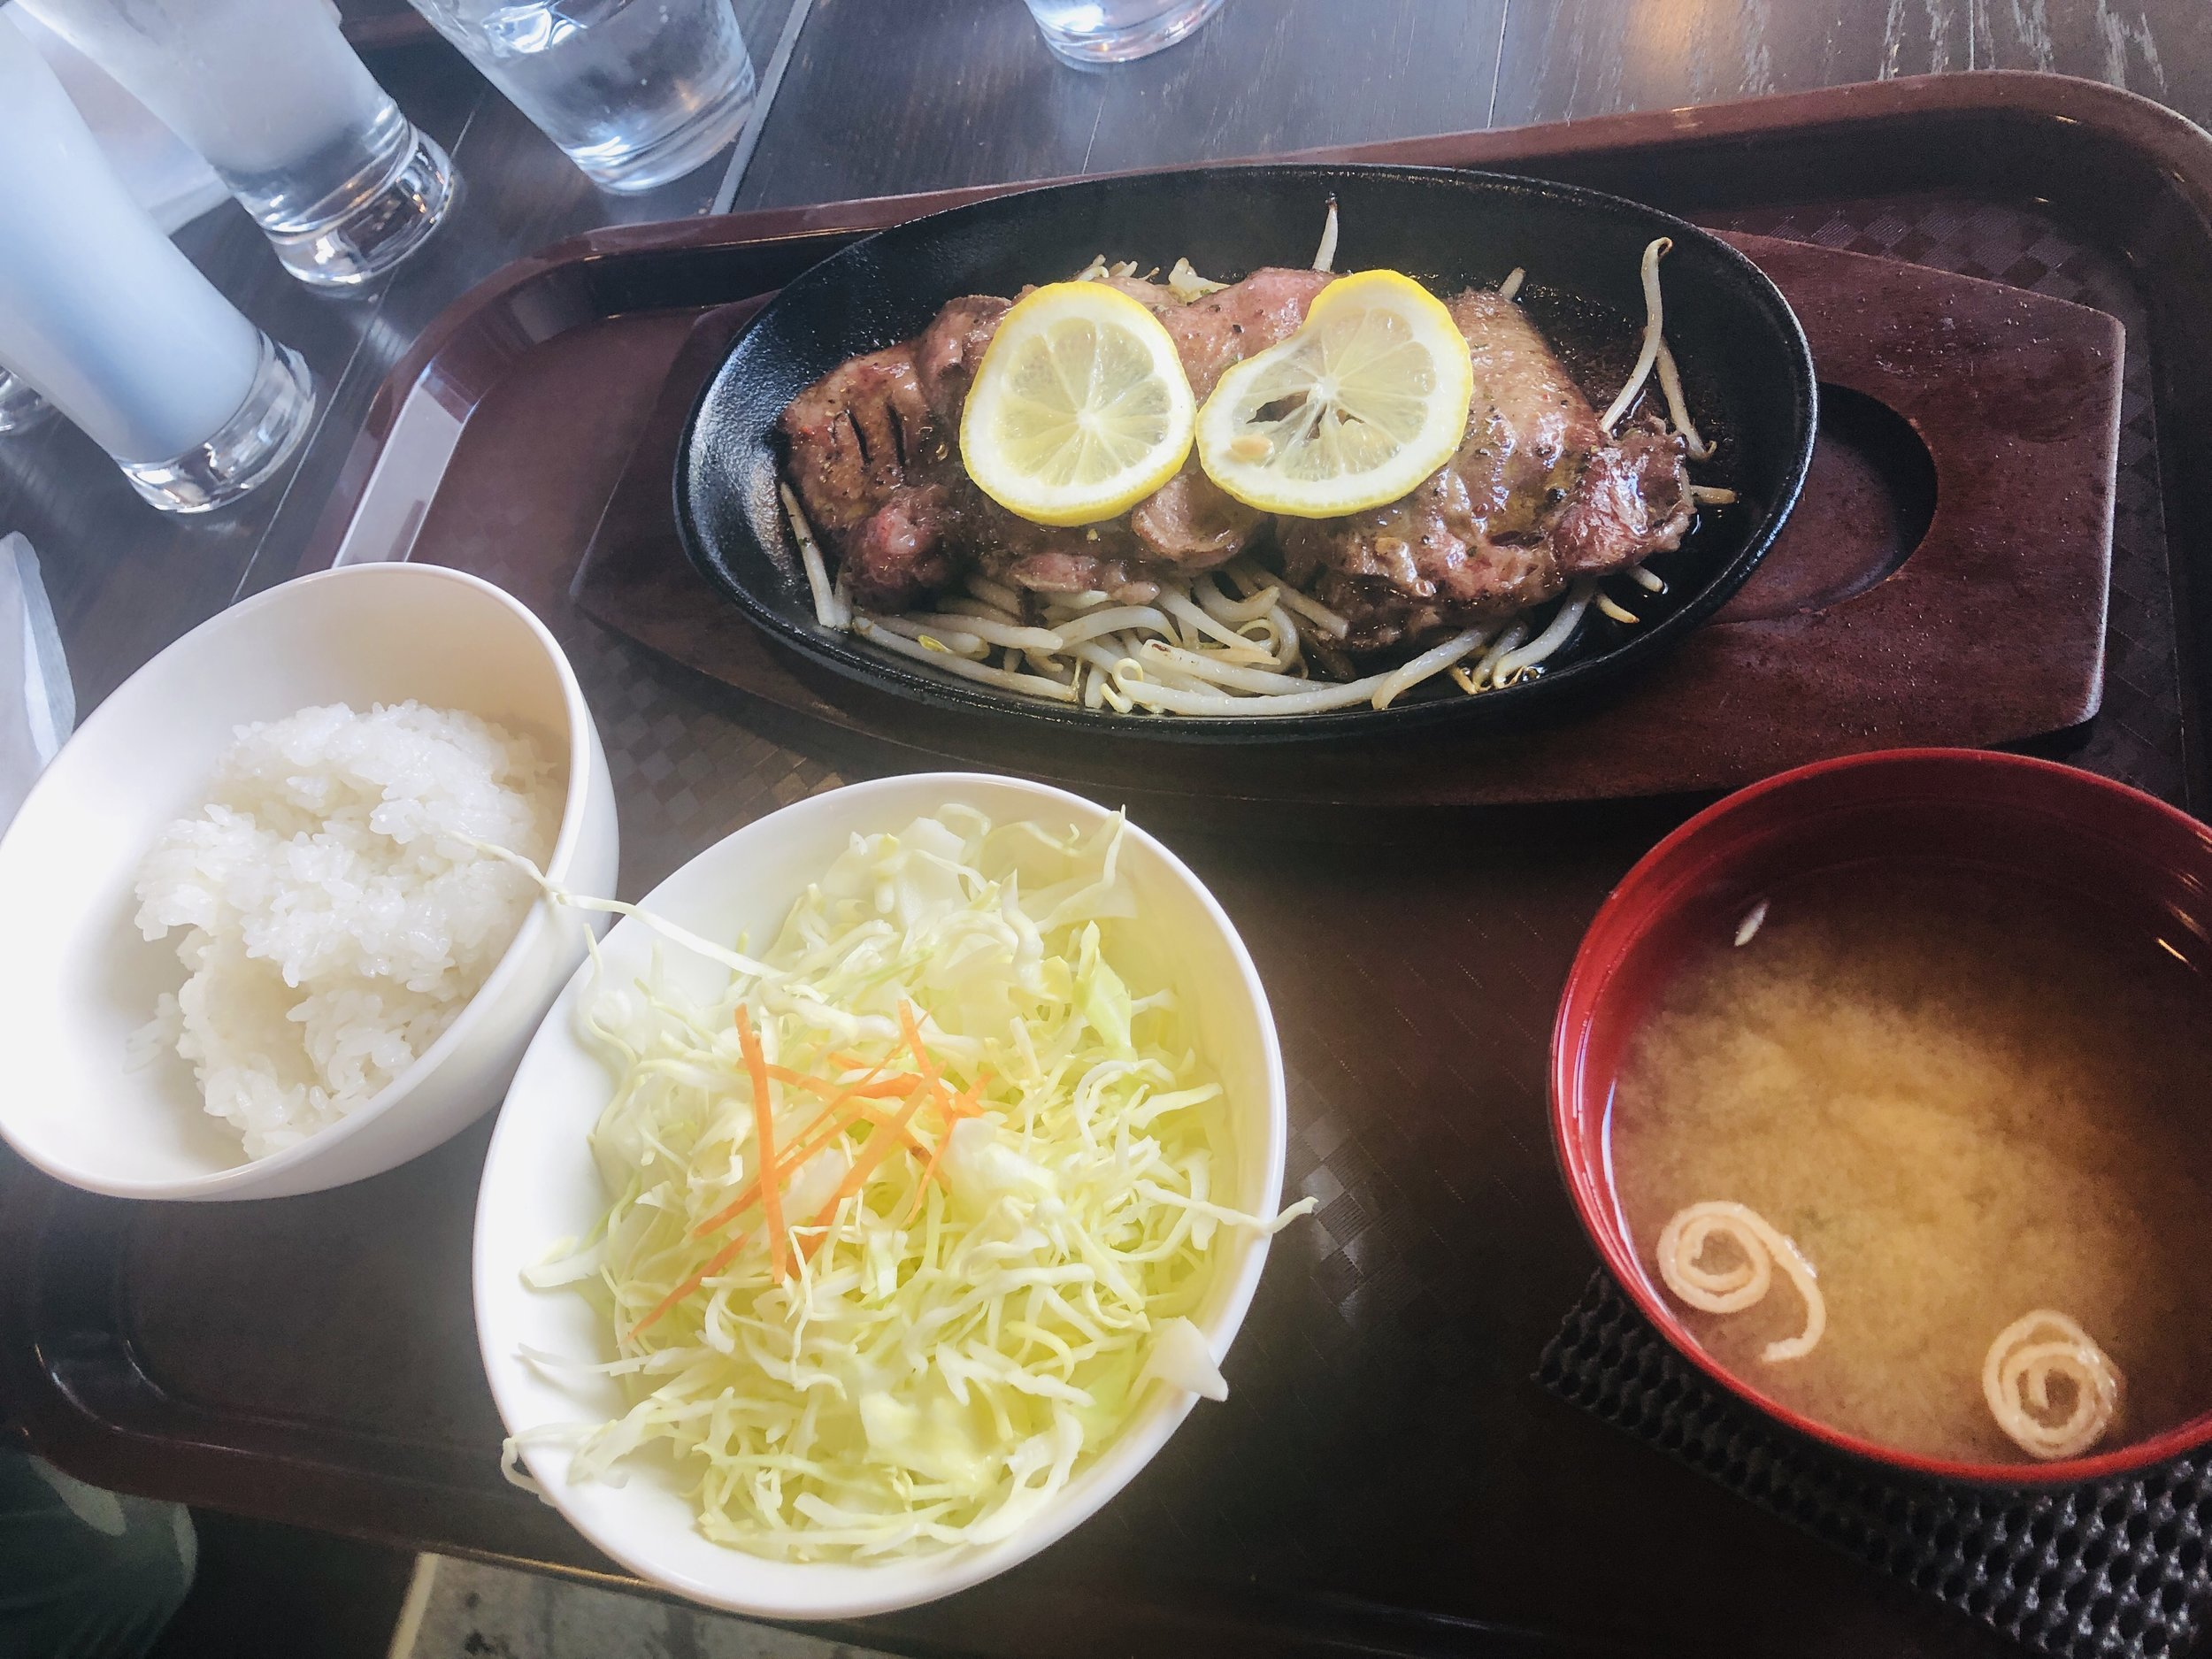 Beef tongue steak lunch set